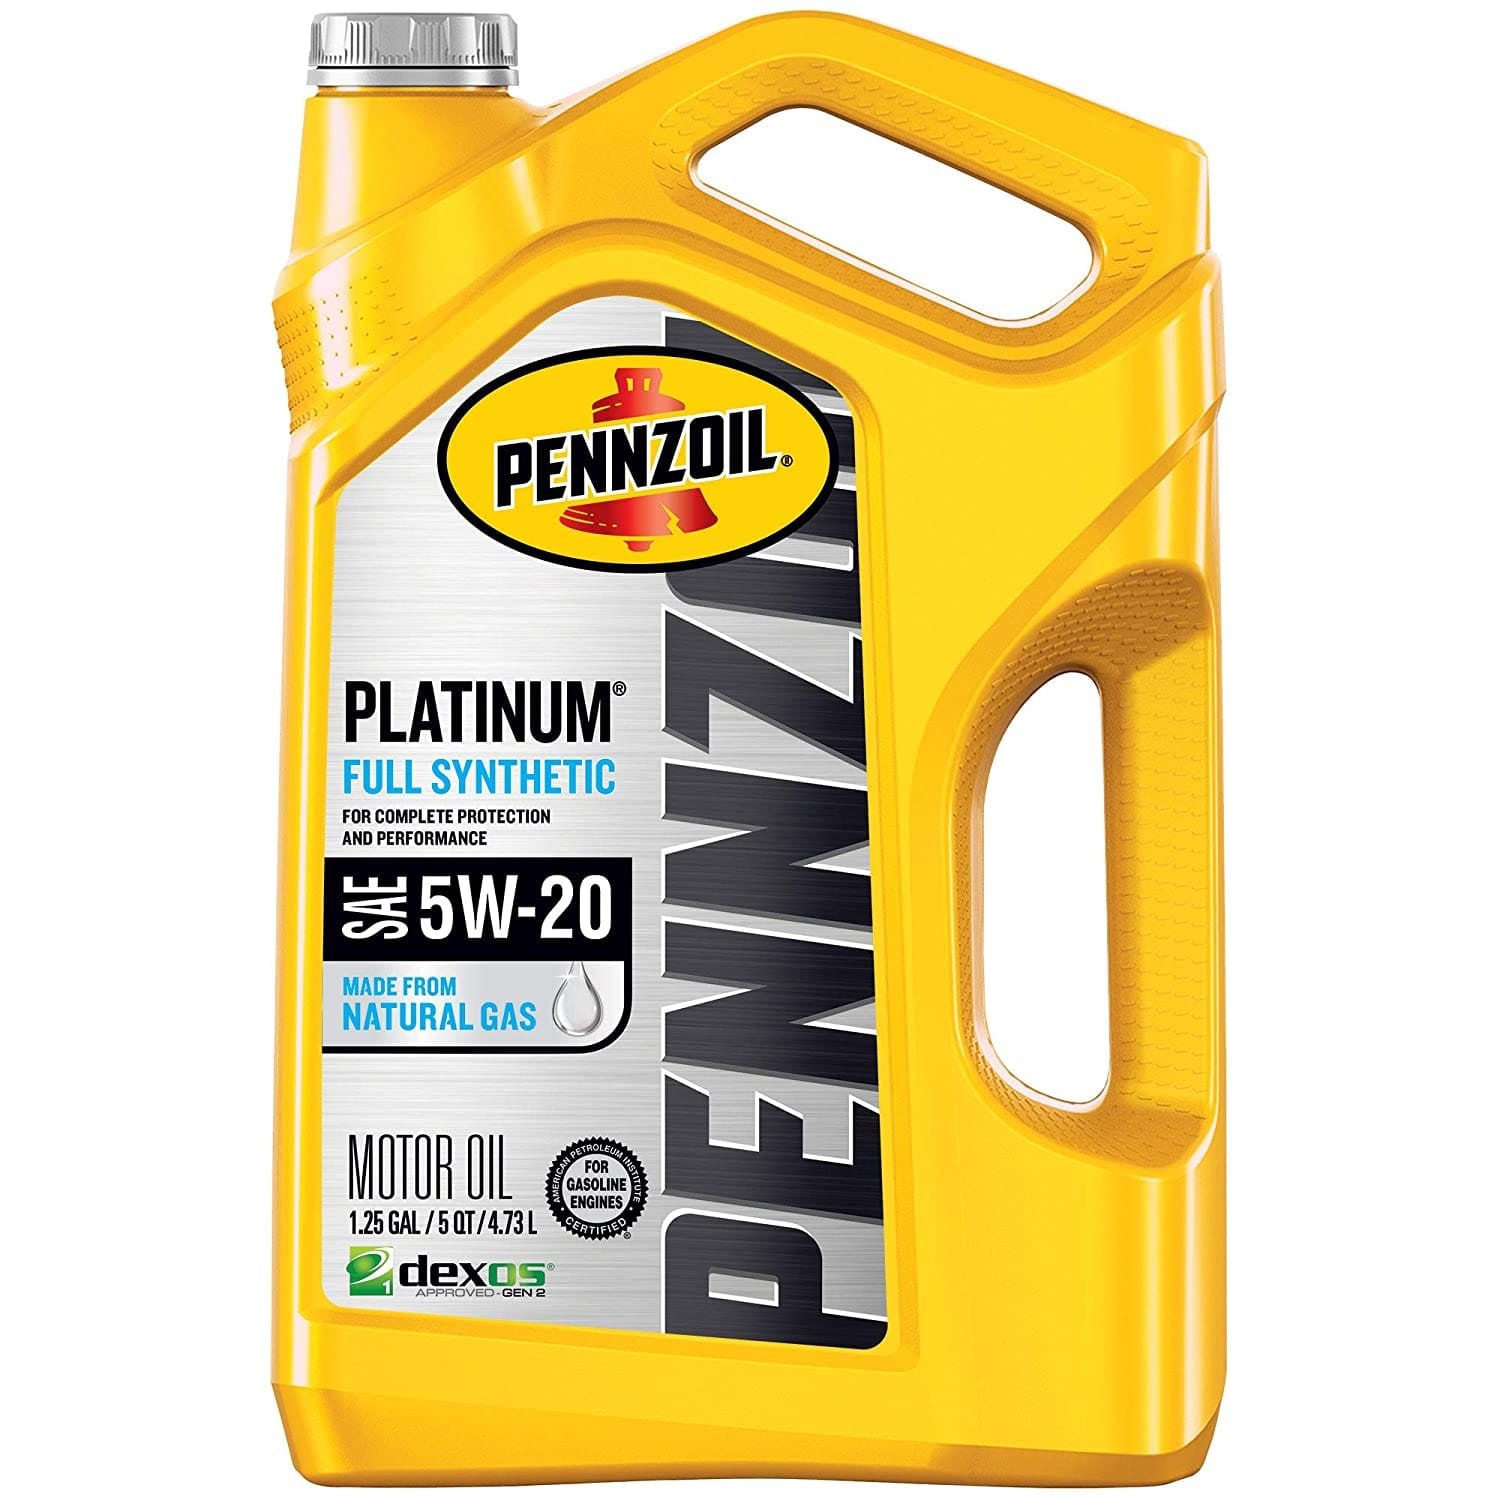 Amazon: Pennzoil Platinum Full Synthetic Motor Oil (SN) 5W-20, 5 Quart - Pack of 1 $12.45 + FREE Shipping on orders over $25.00